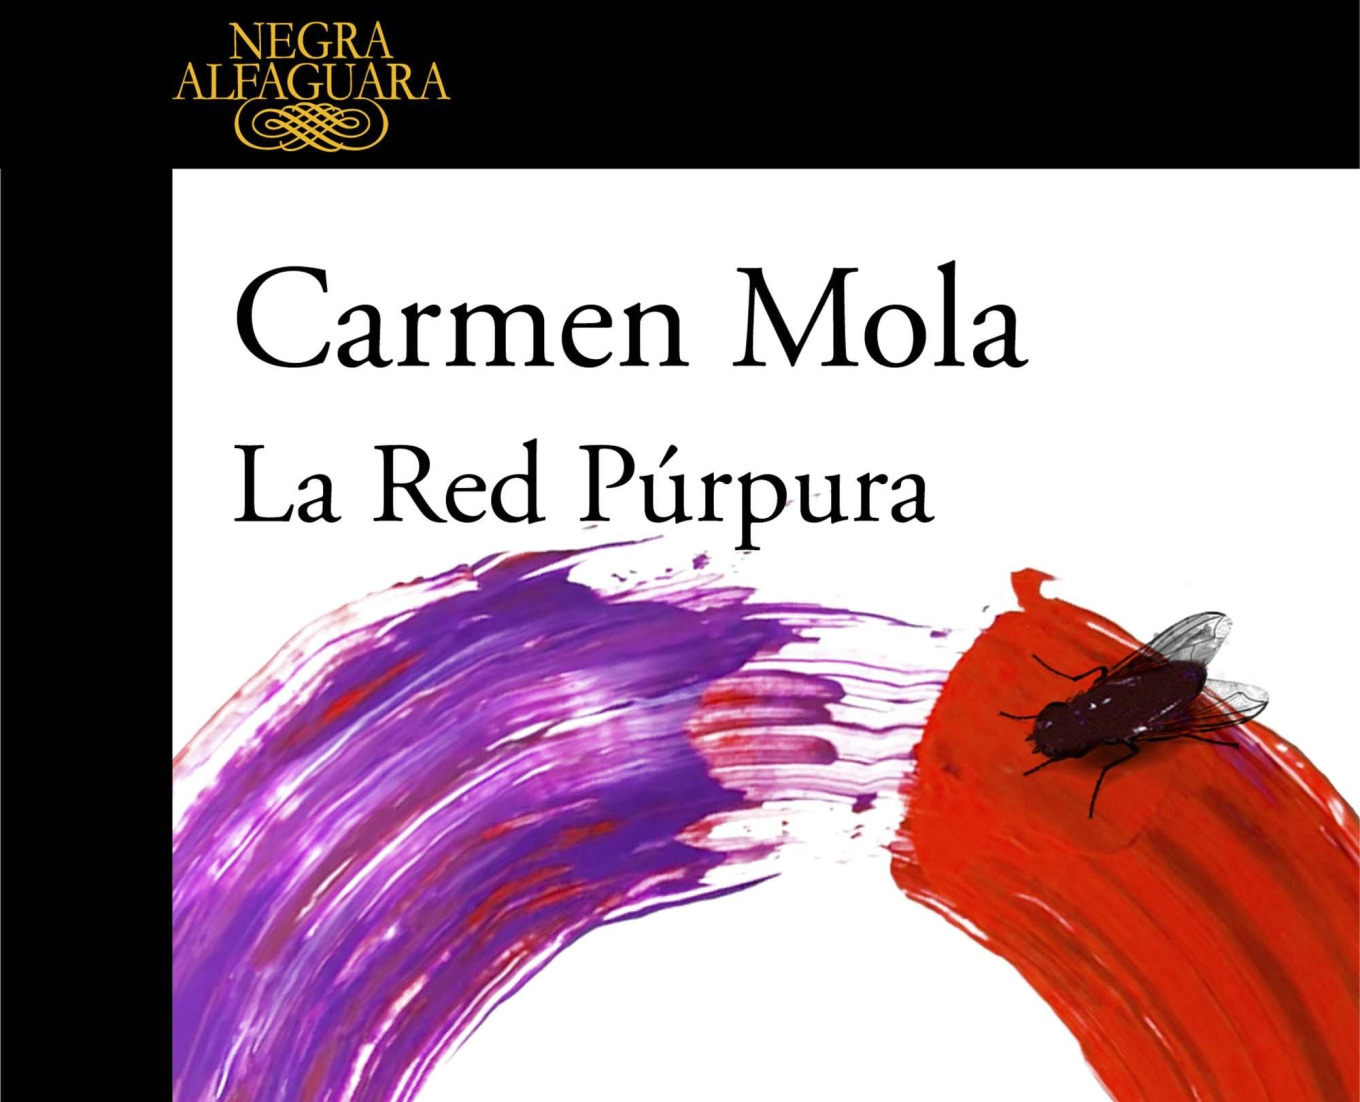 la red purpura carmen mola